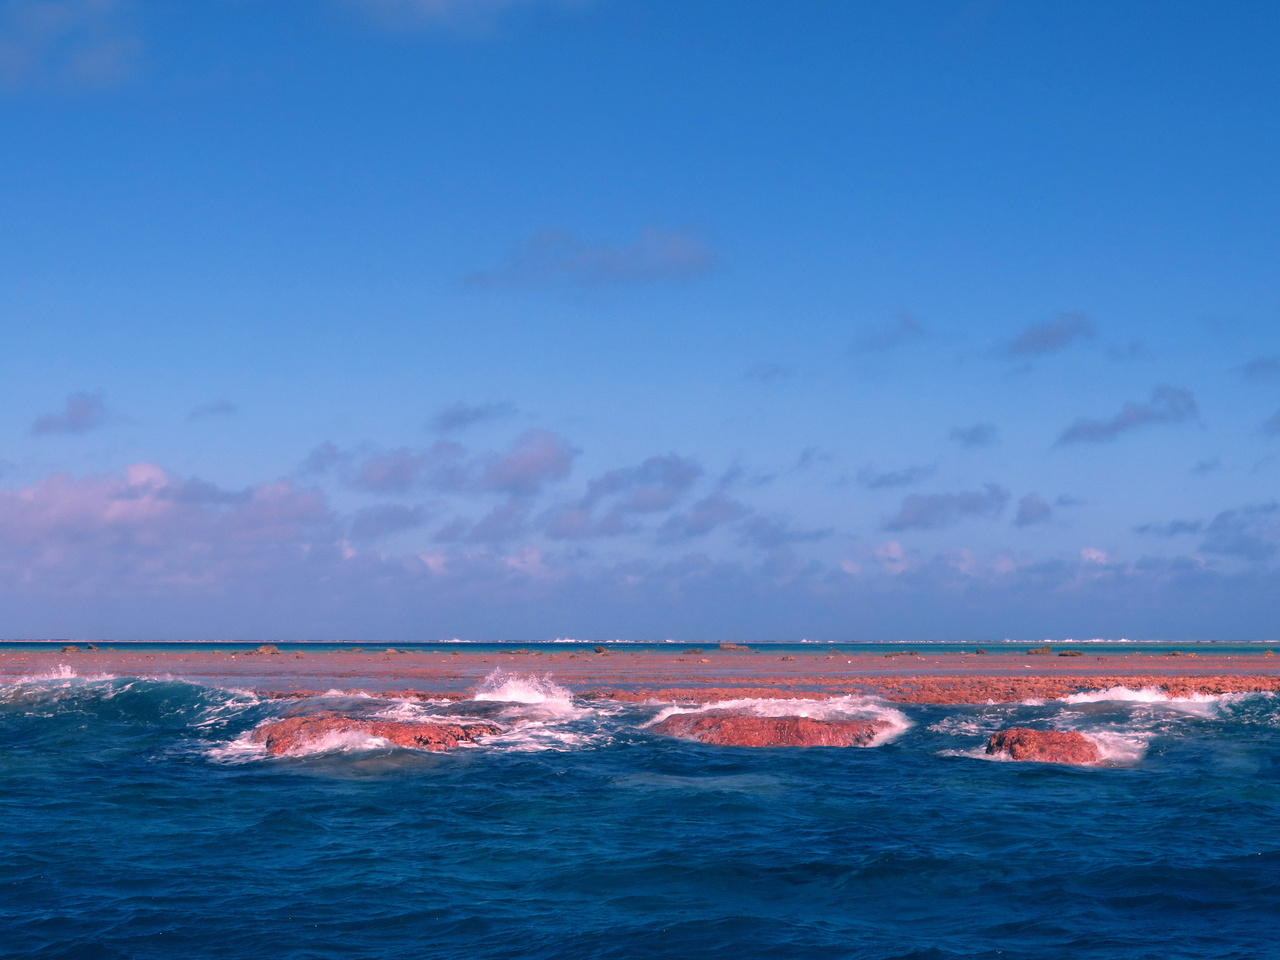 The reef at Rose Atoll is covered in crustose coralline algae—a calcifying algae that can be pink and purple. The oceanographic conditions here are just right for this algae to build its calcium skeleton and thrive. It can even survive after being exposed during low tide. (Photo: NOAA Fisheries/Samantha Clements)